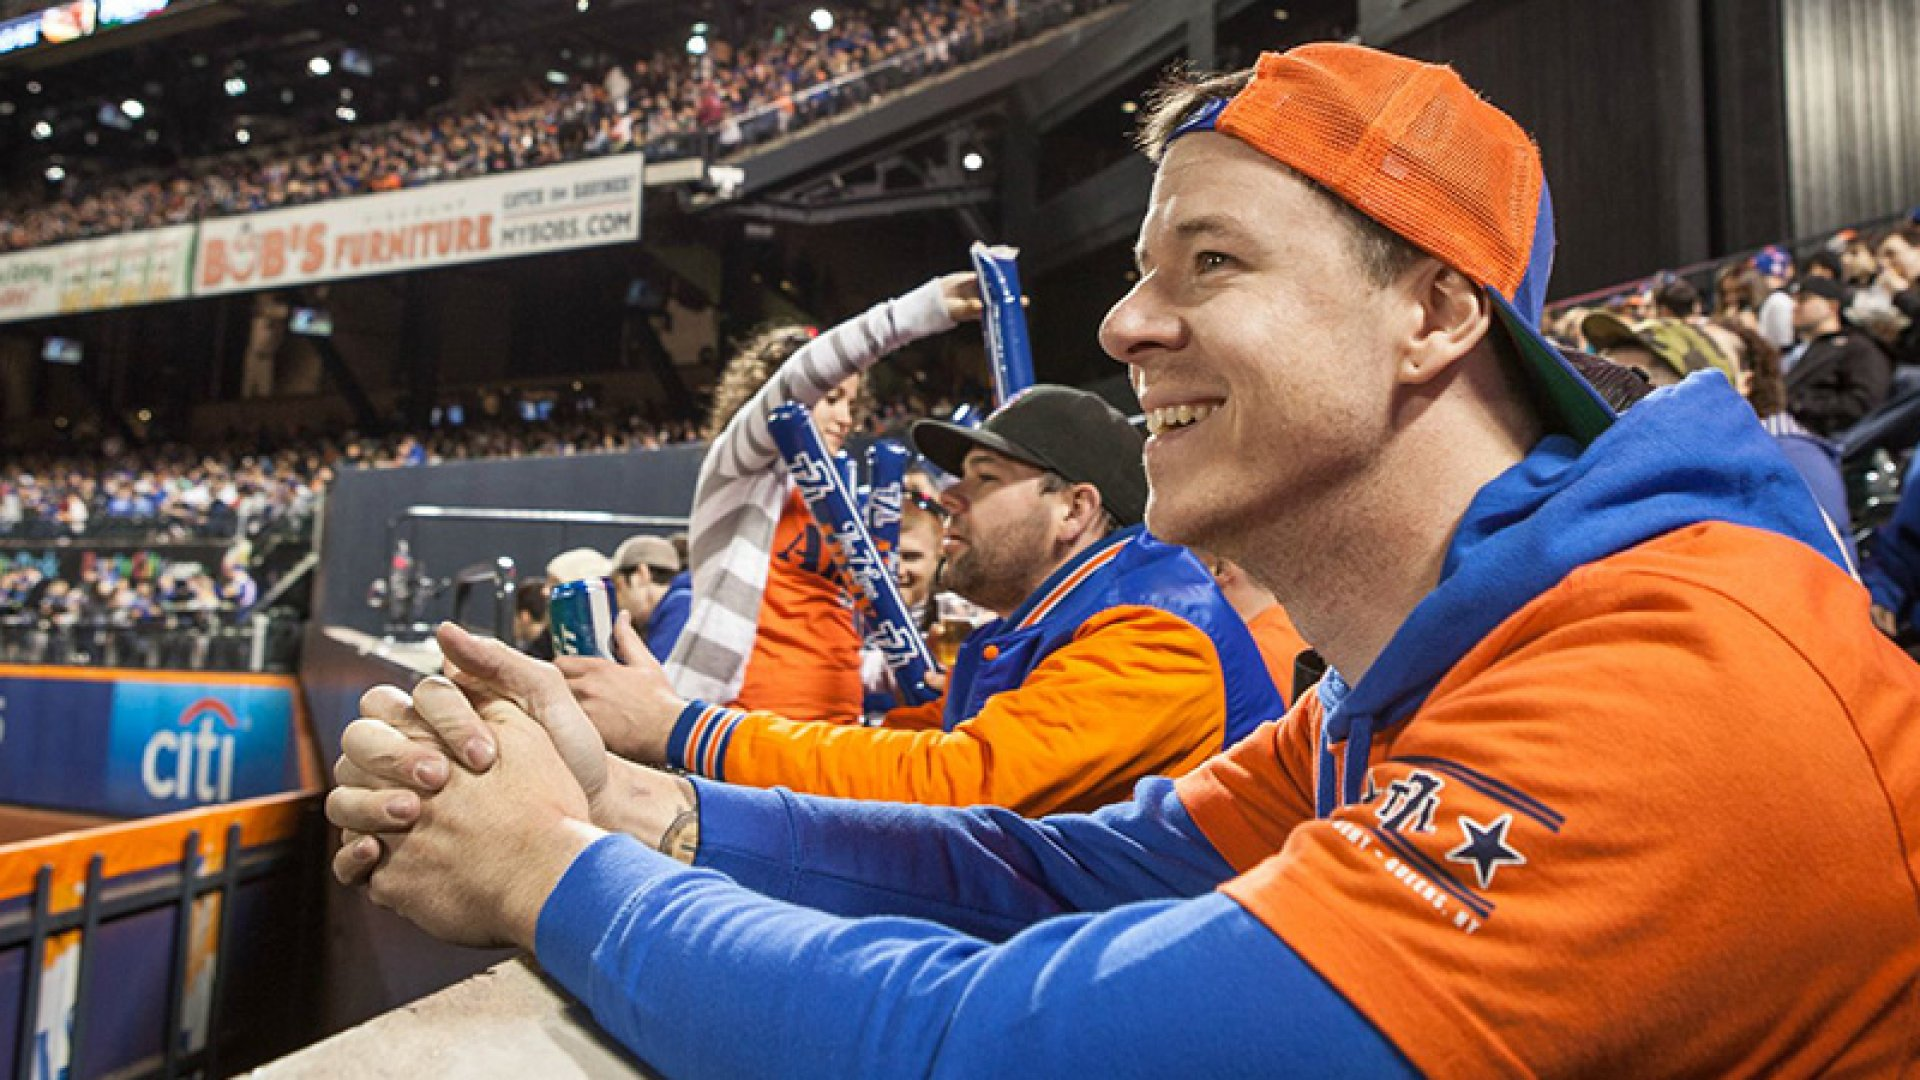 How a Long-Suffering Mets Fan Built a Business From His Pain